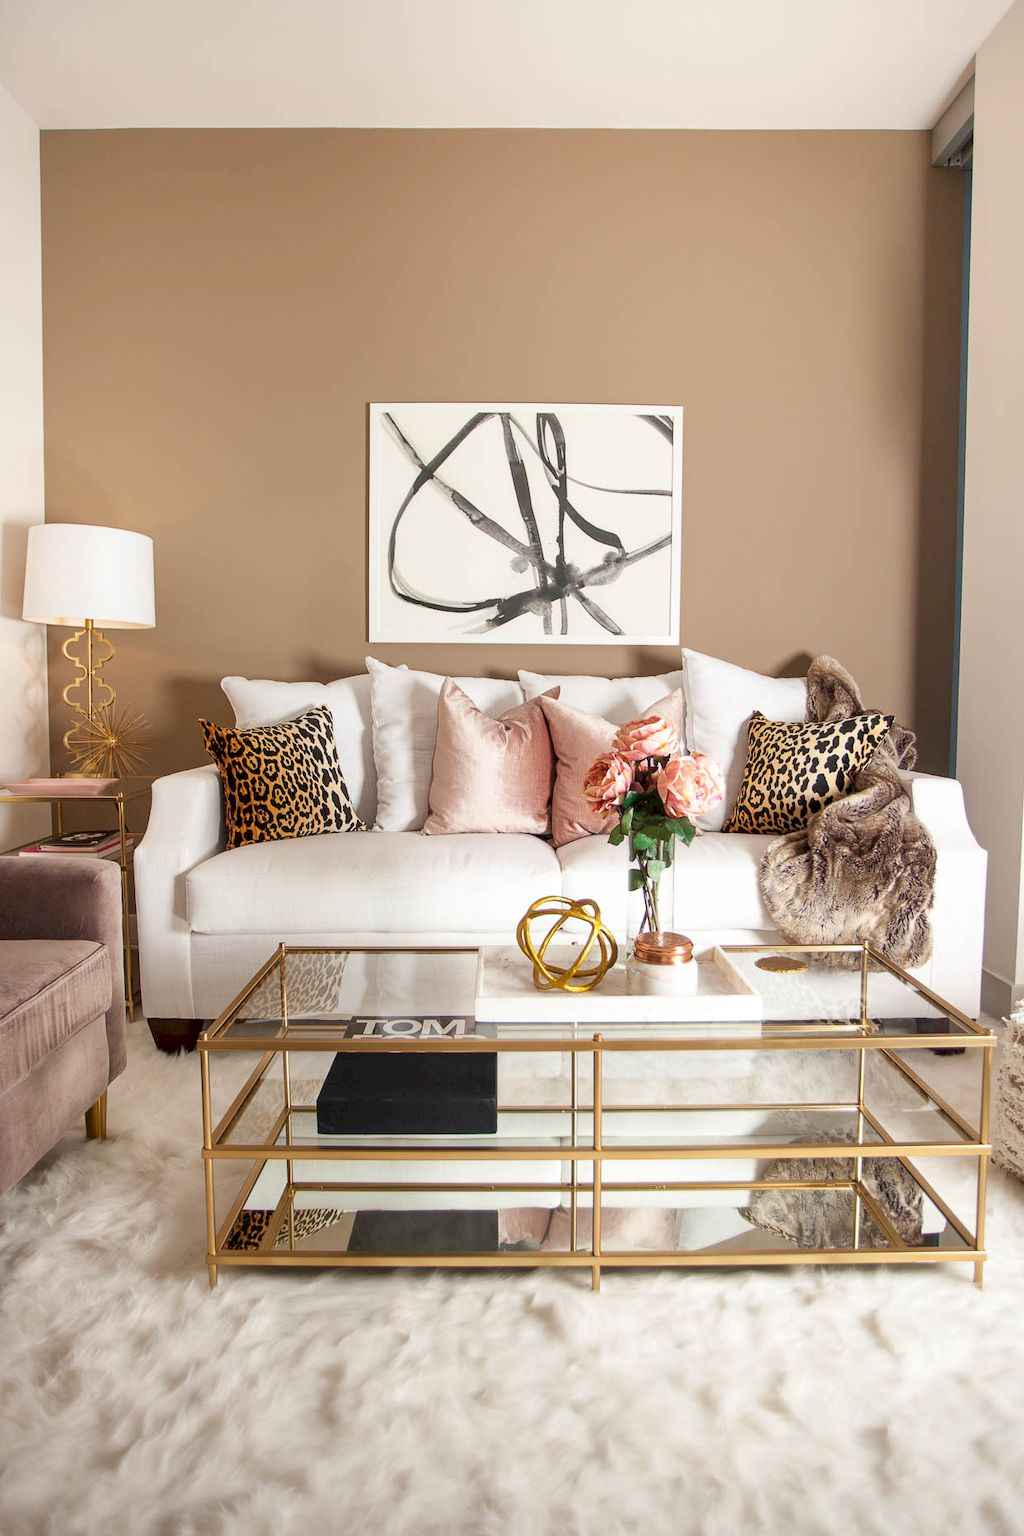 Couples first apartment decorating ideas (69)